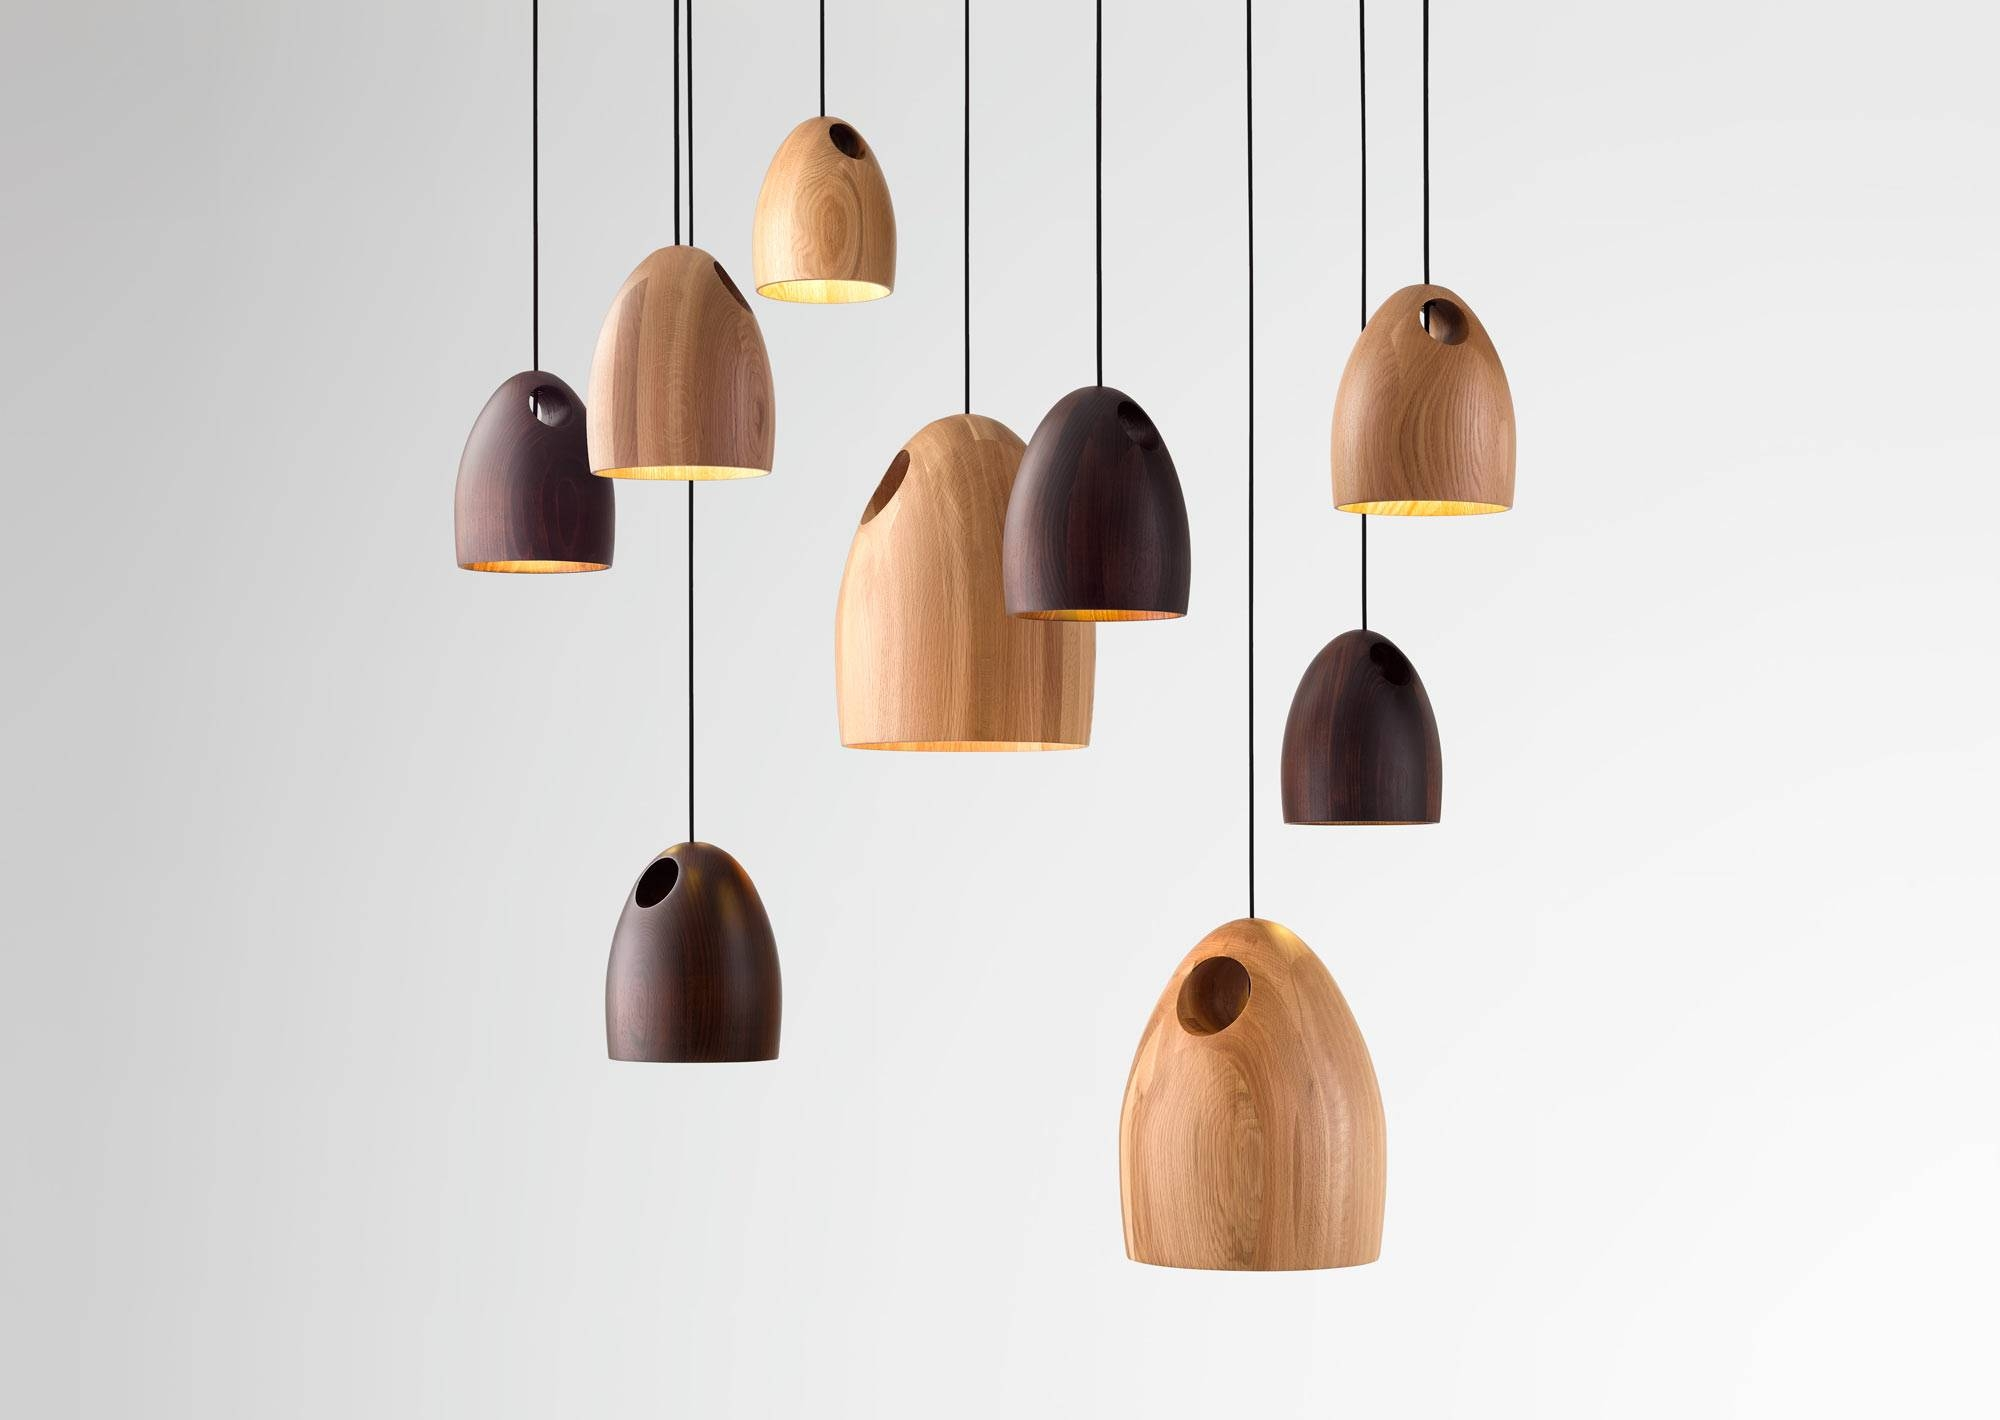 Oak Pendant Light | Ross Gardam – Melbourne Australia With Melbourne Kitchen Pendant Lights (View 9 of 15)